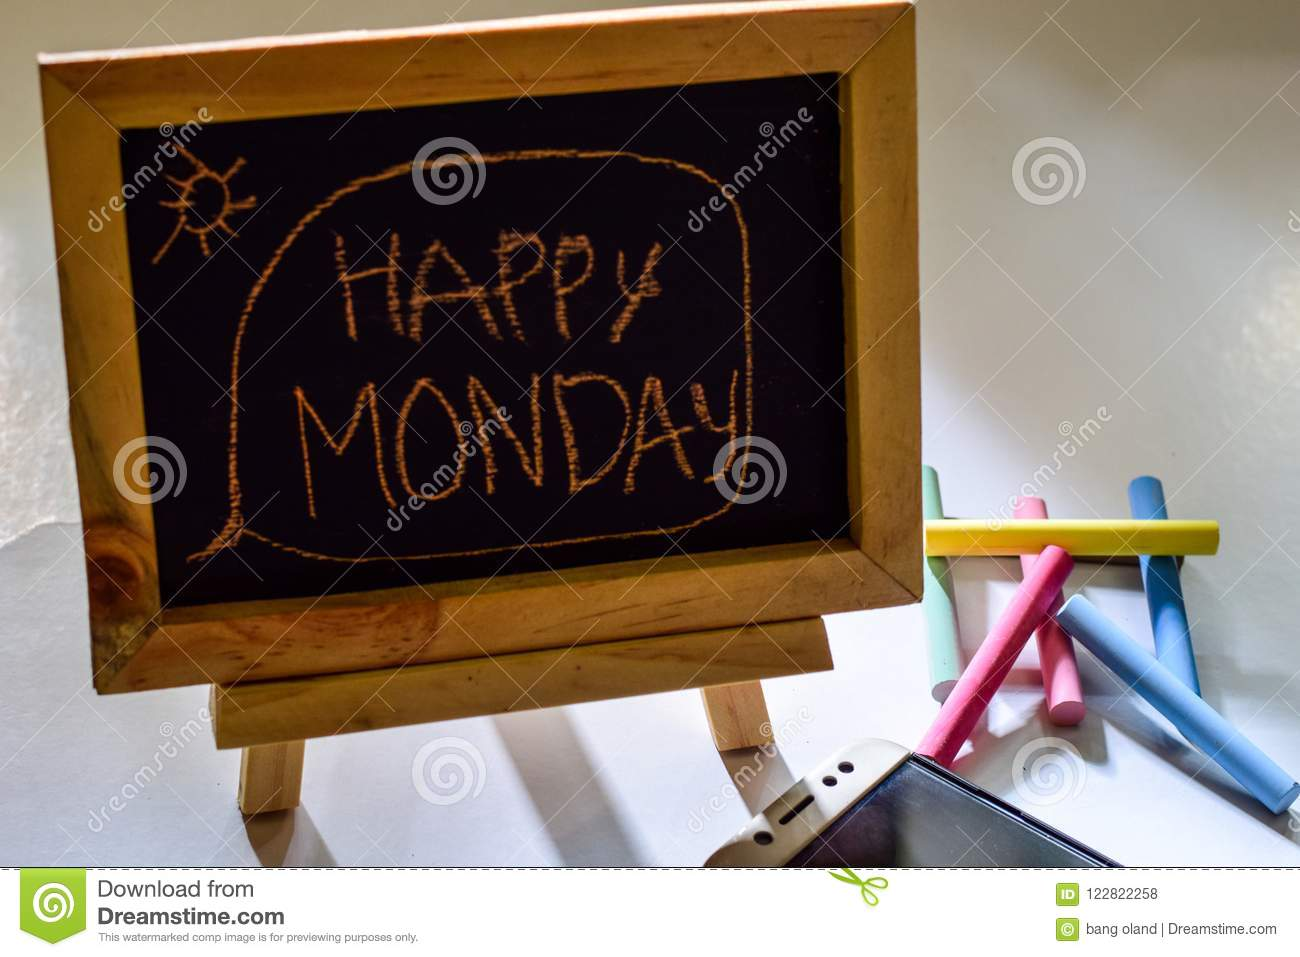 Phrase happy monday written on a chalkboard on it and smartphone, colorful chalk